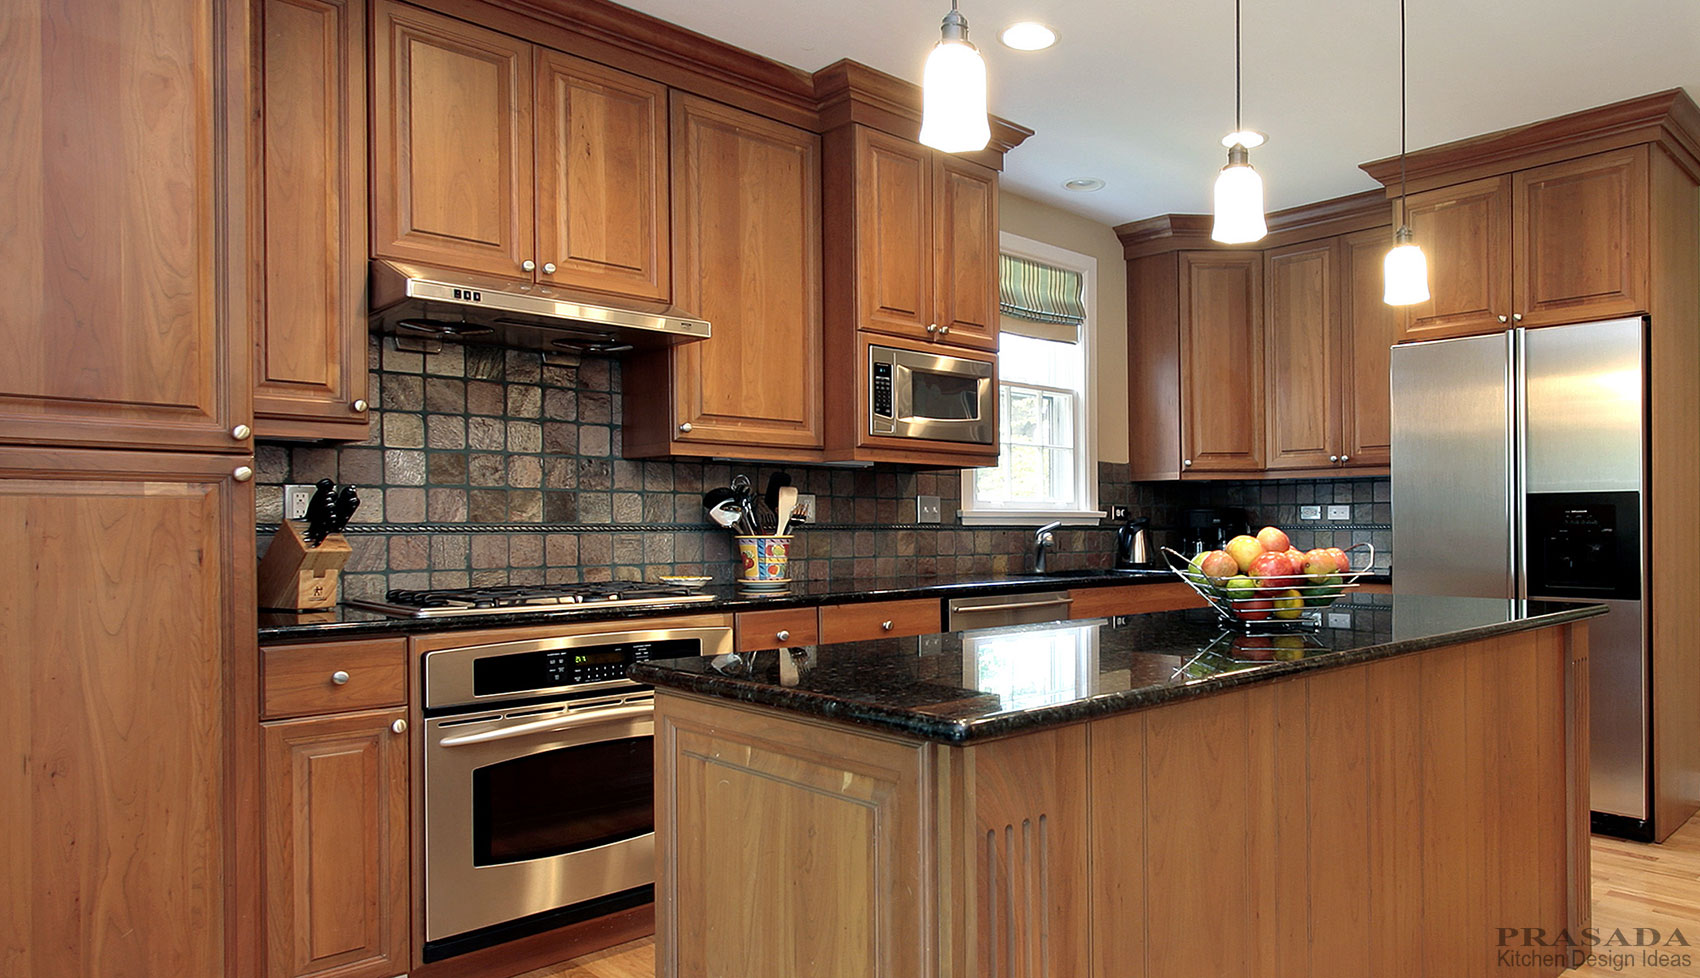 Kitchen design ideas prasada kitchens and fine cabinetry for Discount kitchens